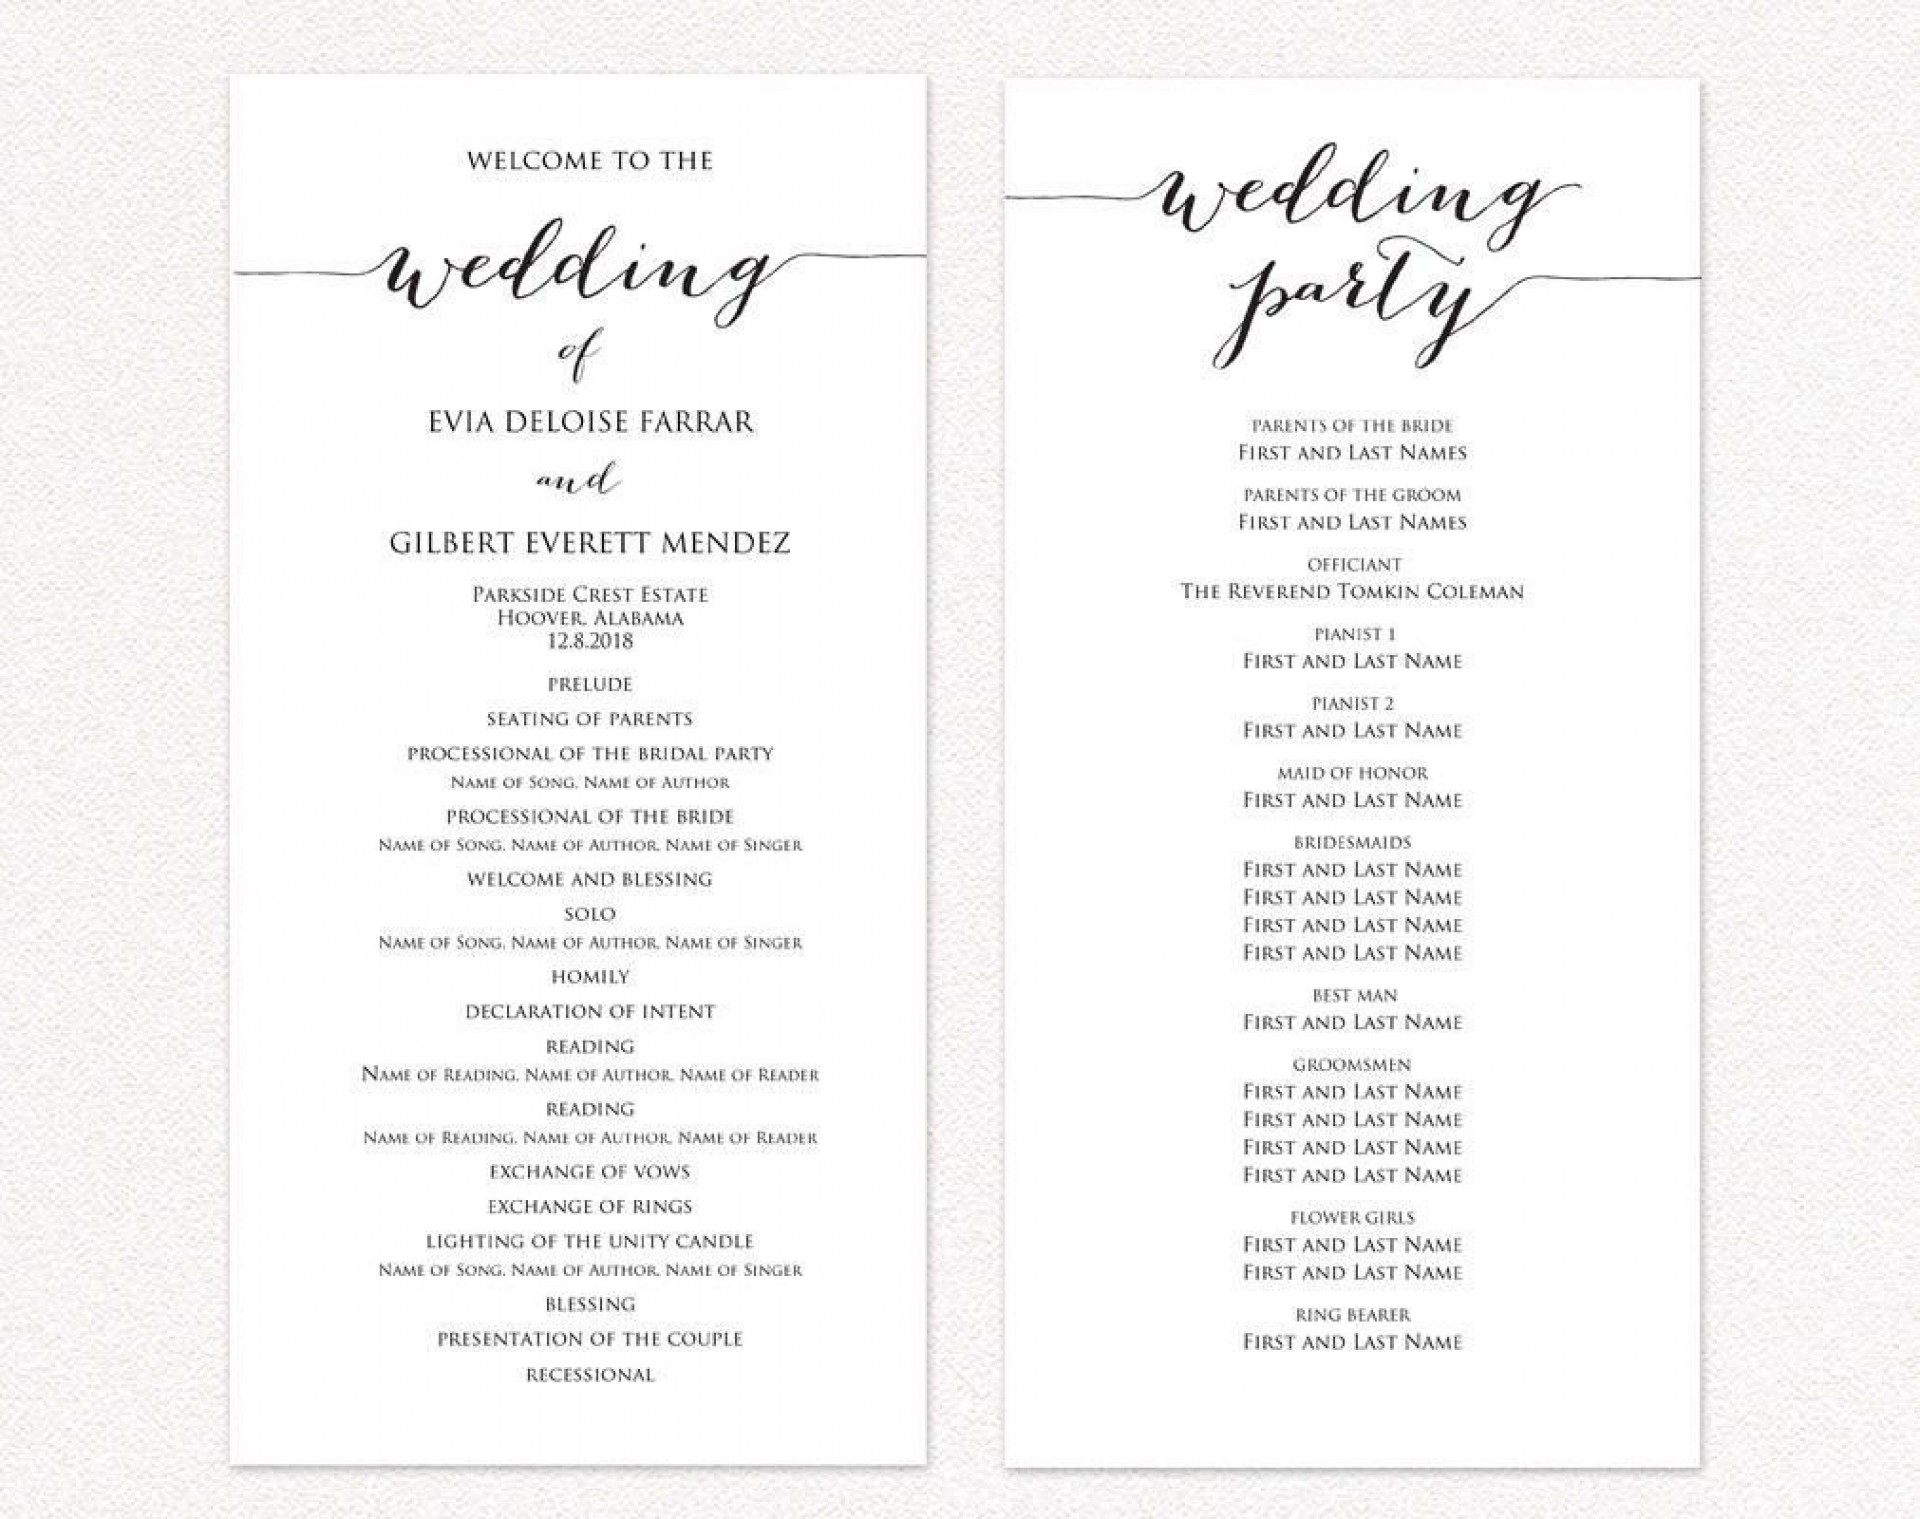 003 Wondrou Wedding Reception Program Template Sample  Templates Layout Free Download Ceremony And1920